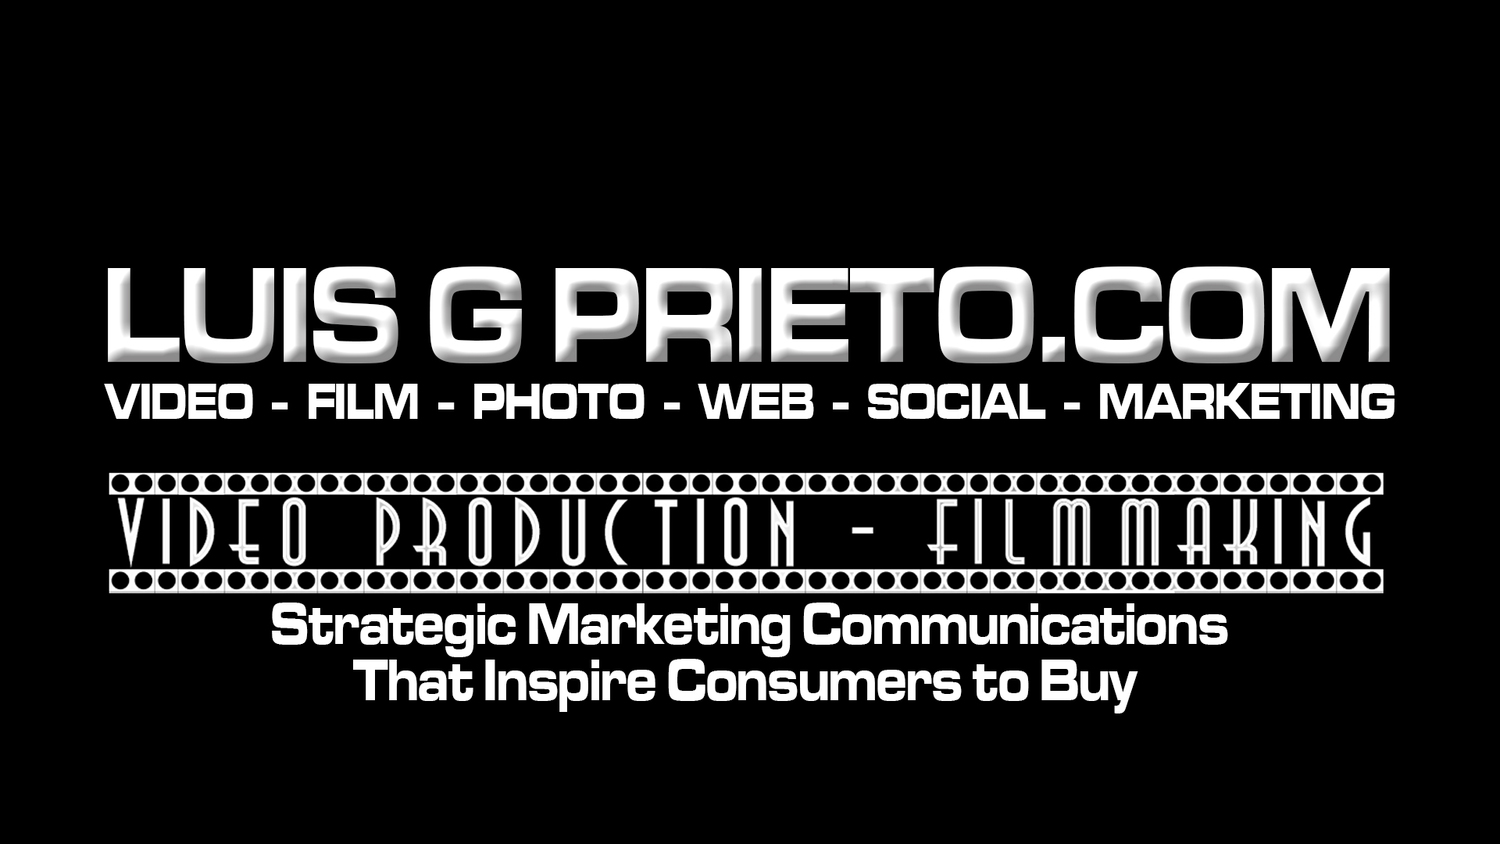 AFFORDABLE VIDEO MARKETING SERVICES - DIGITAL MEDIA- WEB DEVELOPMENT - VIDEO PRODUCTION CINEMA HD-2K & 4K Affordable